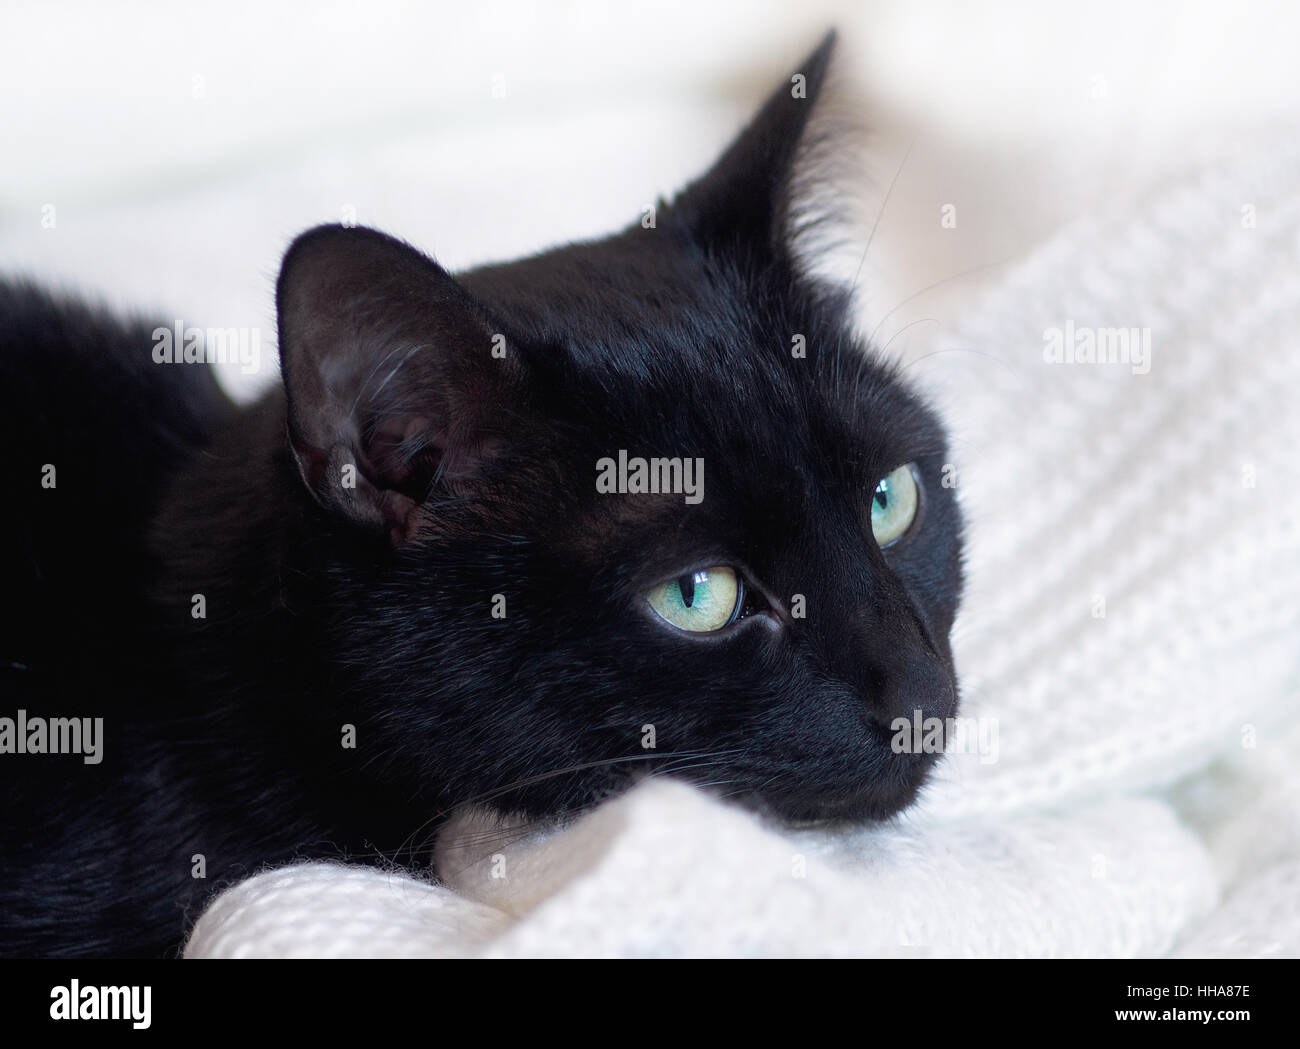 Black cat on white clothes leaves hair. - Stock Image